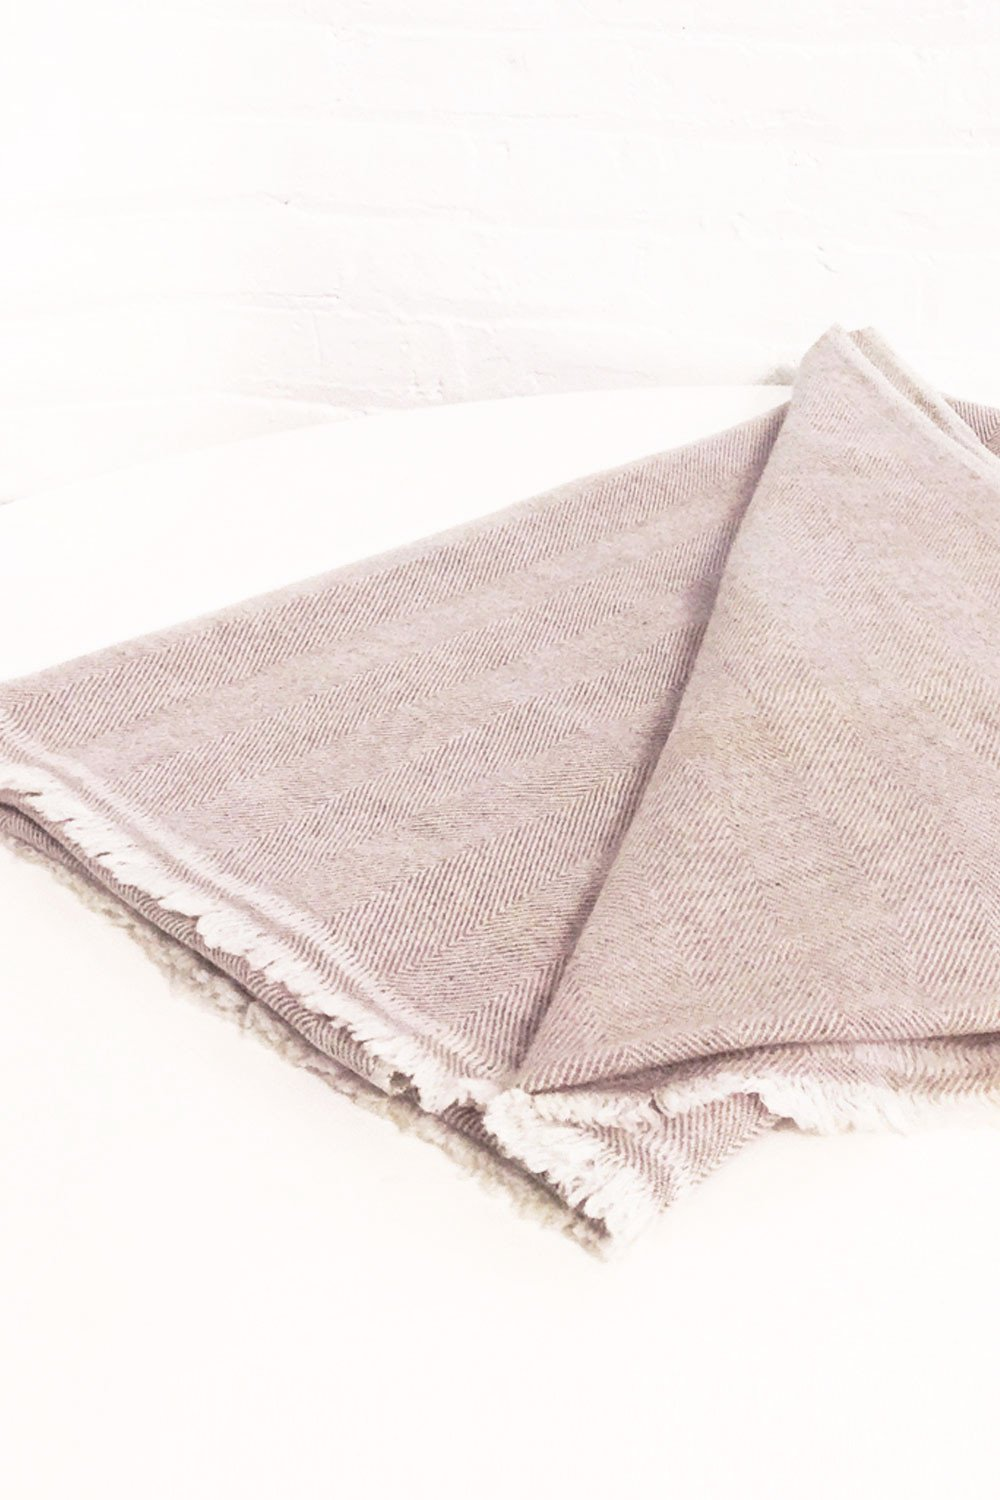 ... cashmere blanket - primary new york ... ivkksjf